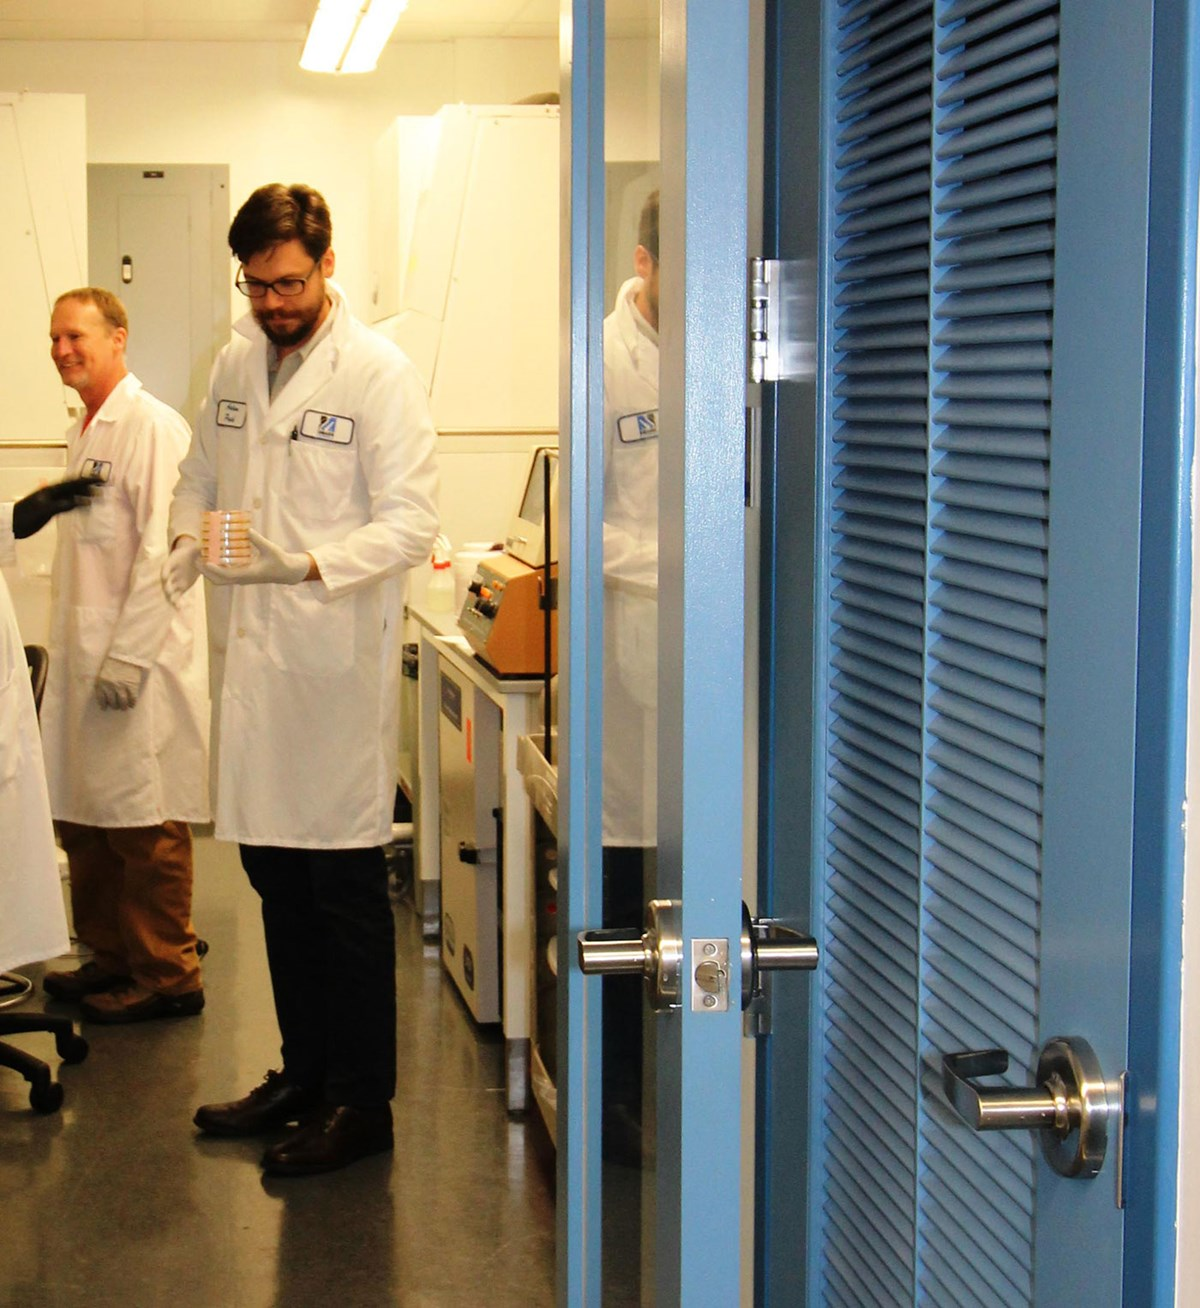 Dorrs opening into a lab with men working